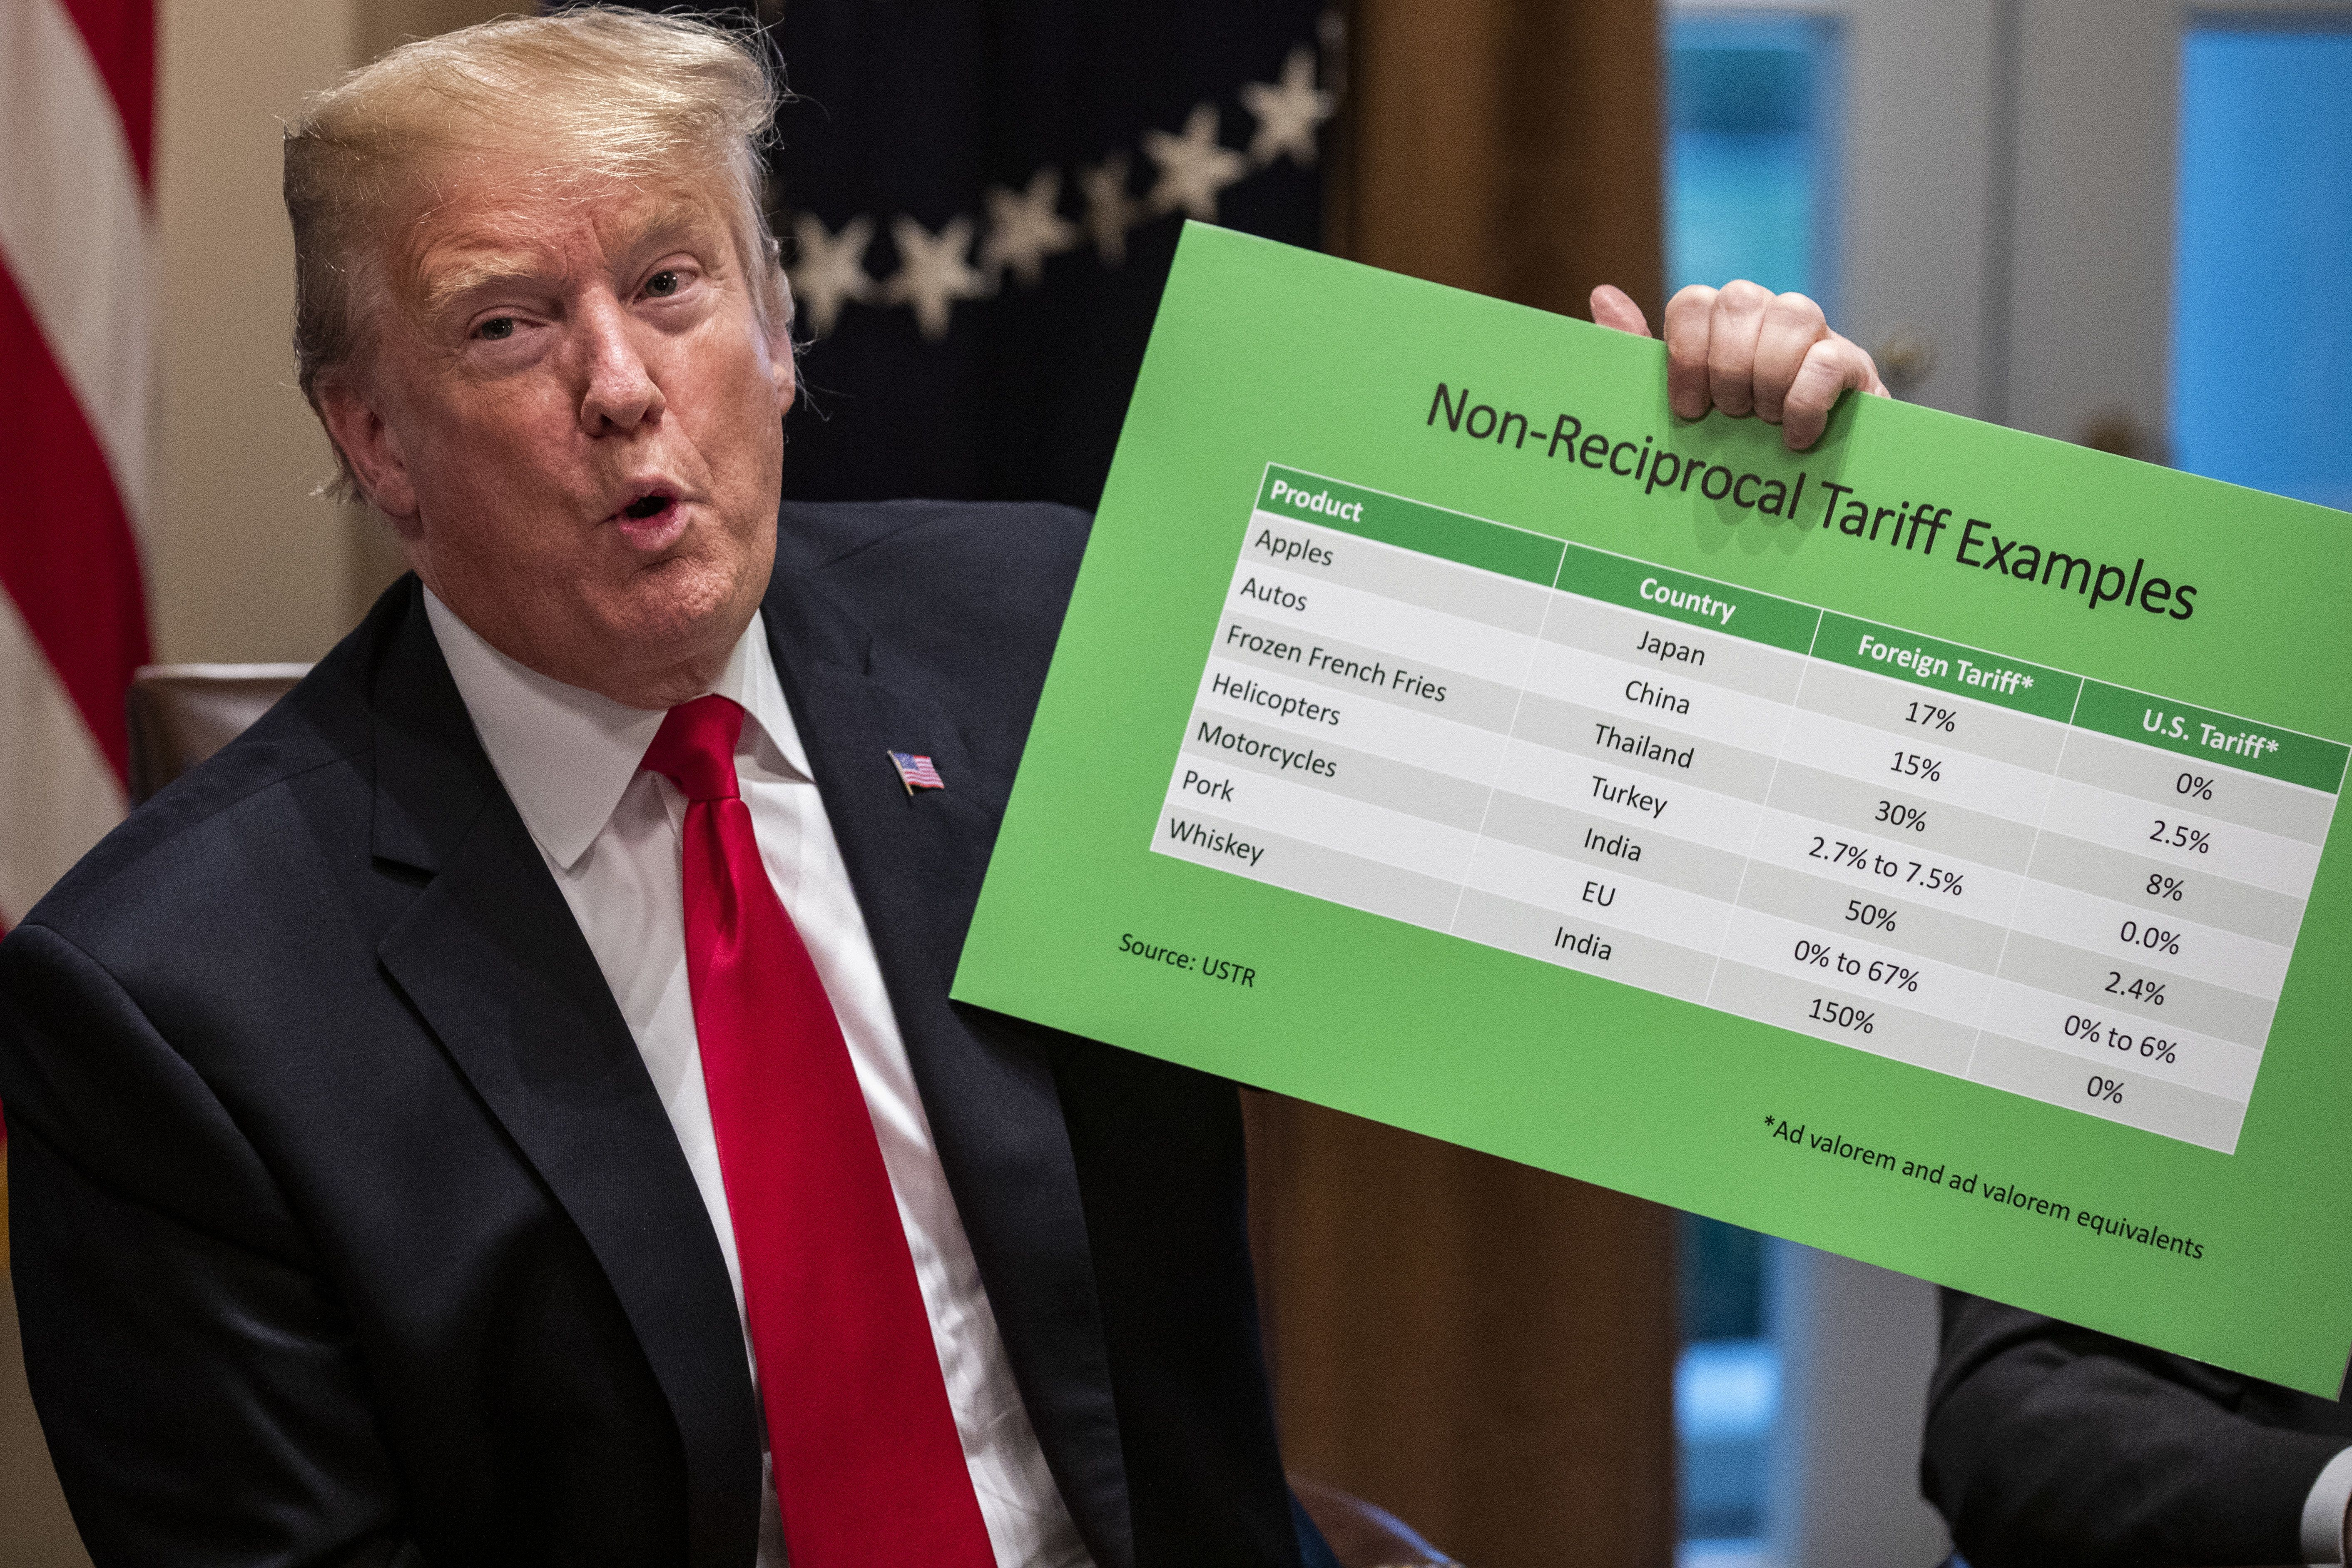 U.S. President Donald Trump speaks while holding a chart illustrating non-reciprocal tariff examples during a meeting in the Cabinet Room of the White House in Washington, D.C., U.S., Thursday, Jan. 24, 2019. Senators began a new effort to end the 34-day partial government shutdown after blocking two rival spending bills. The White House signaled President Trumpwas open to a plan to reopen agencies for three weeks, but at a price. Photographer: Alex Edelman/Bloomberg via Getty Images